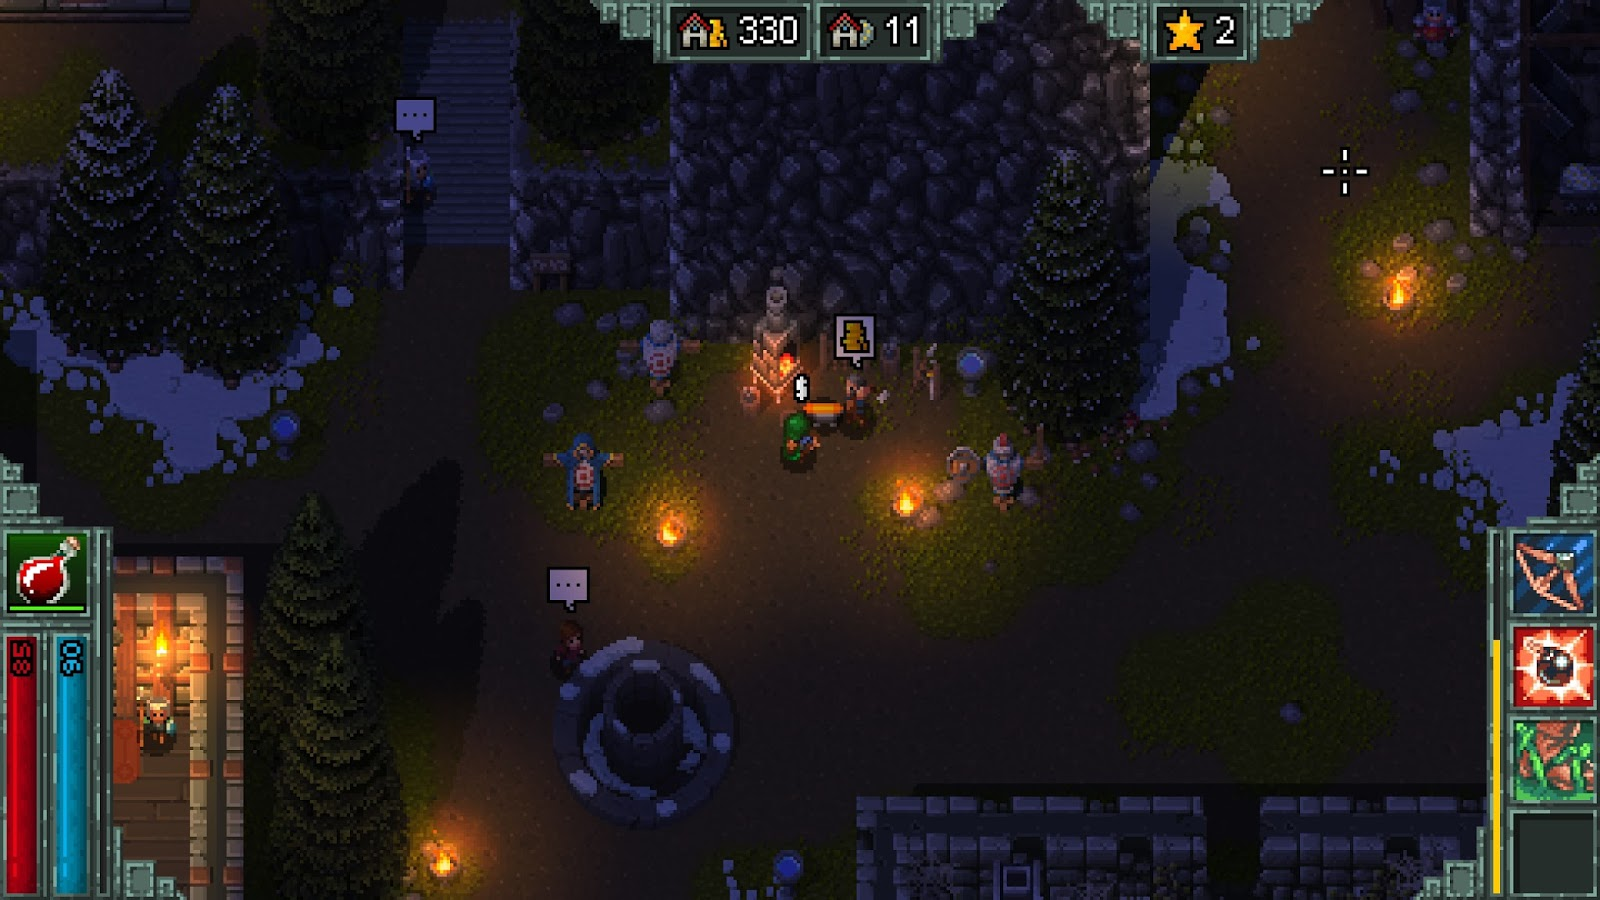 Review - HEROES OF HAMMERWATCH - Hammered by the grind